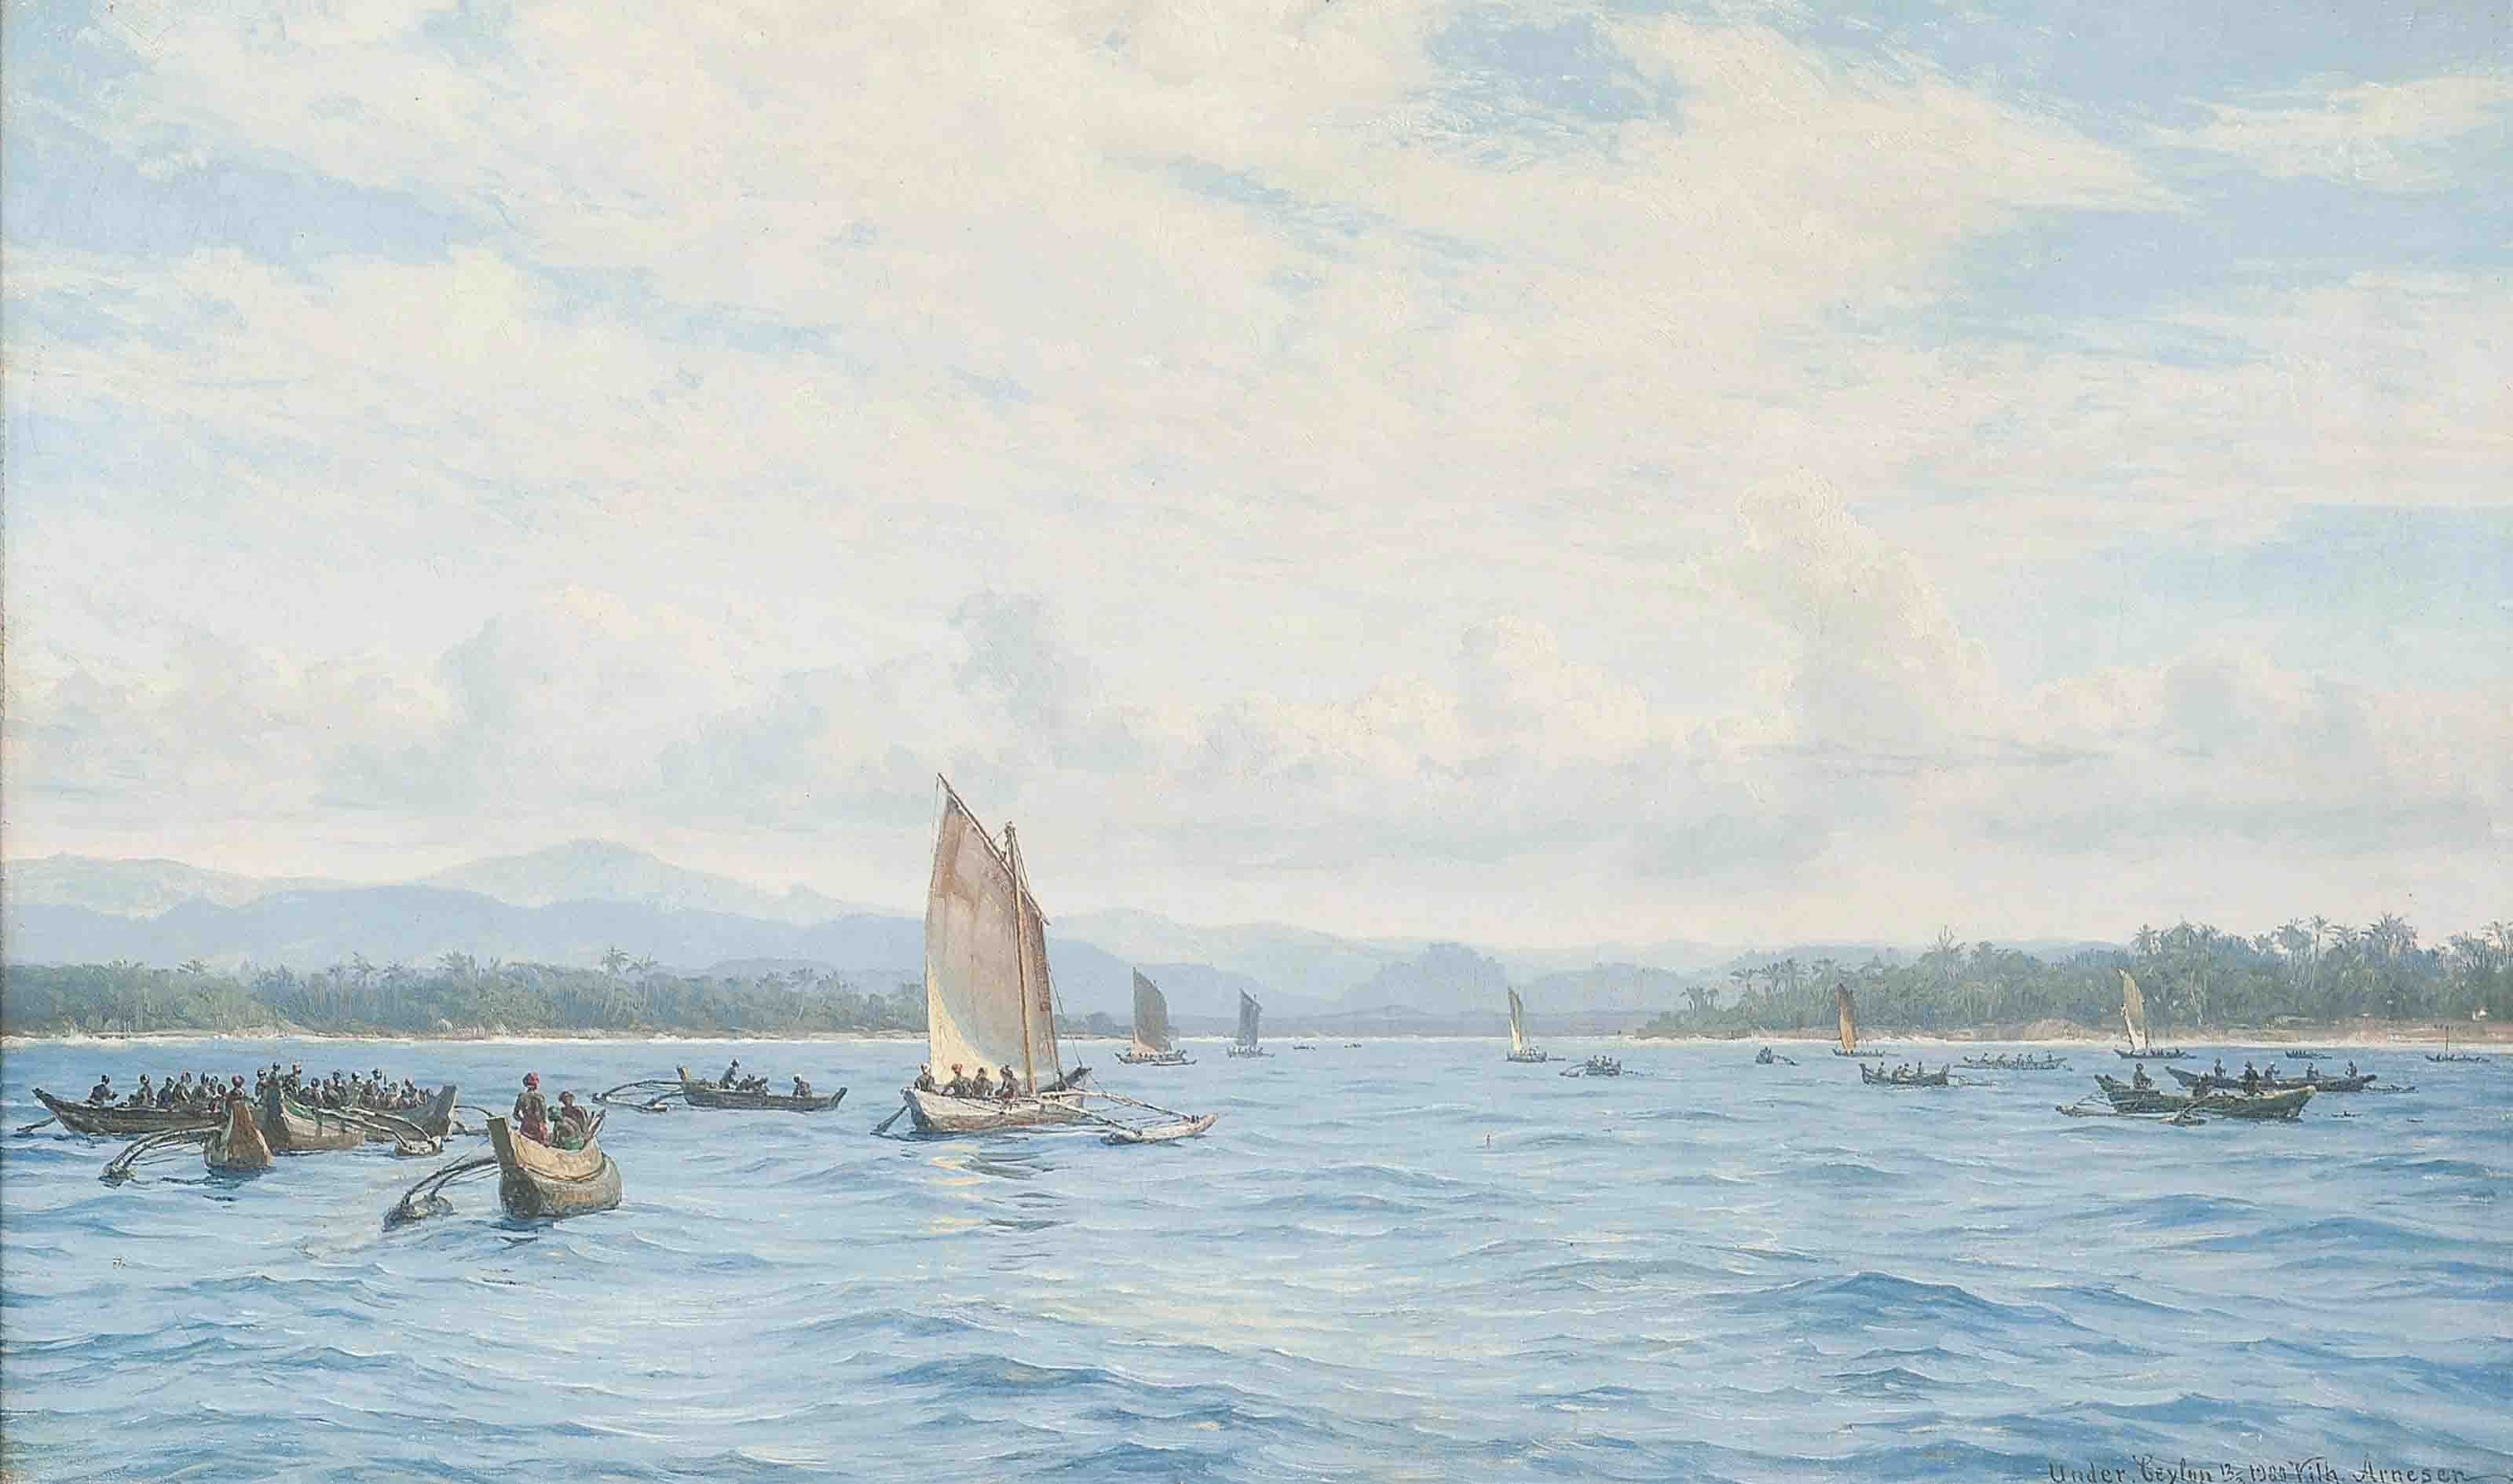 Fishing boats with outriggers, Ceylon